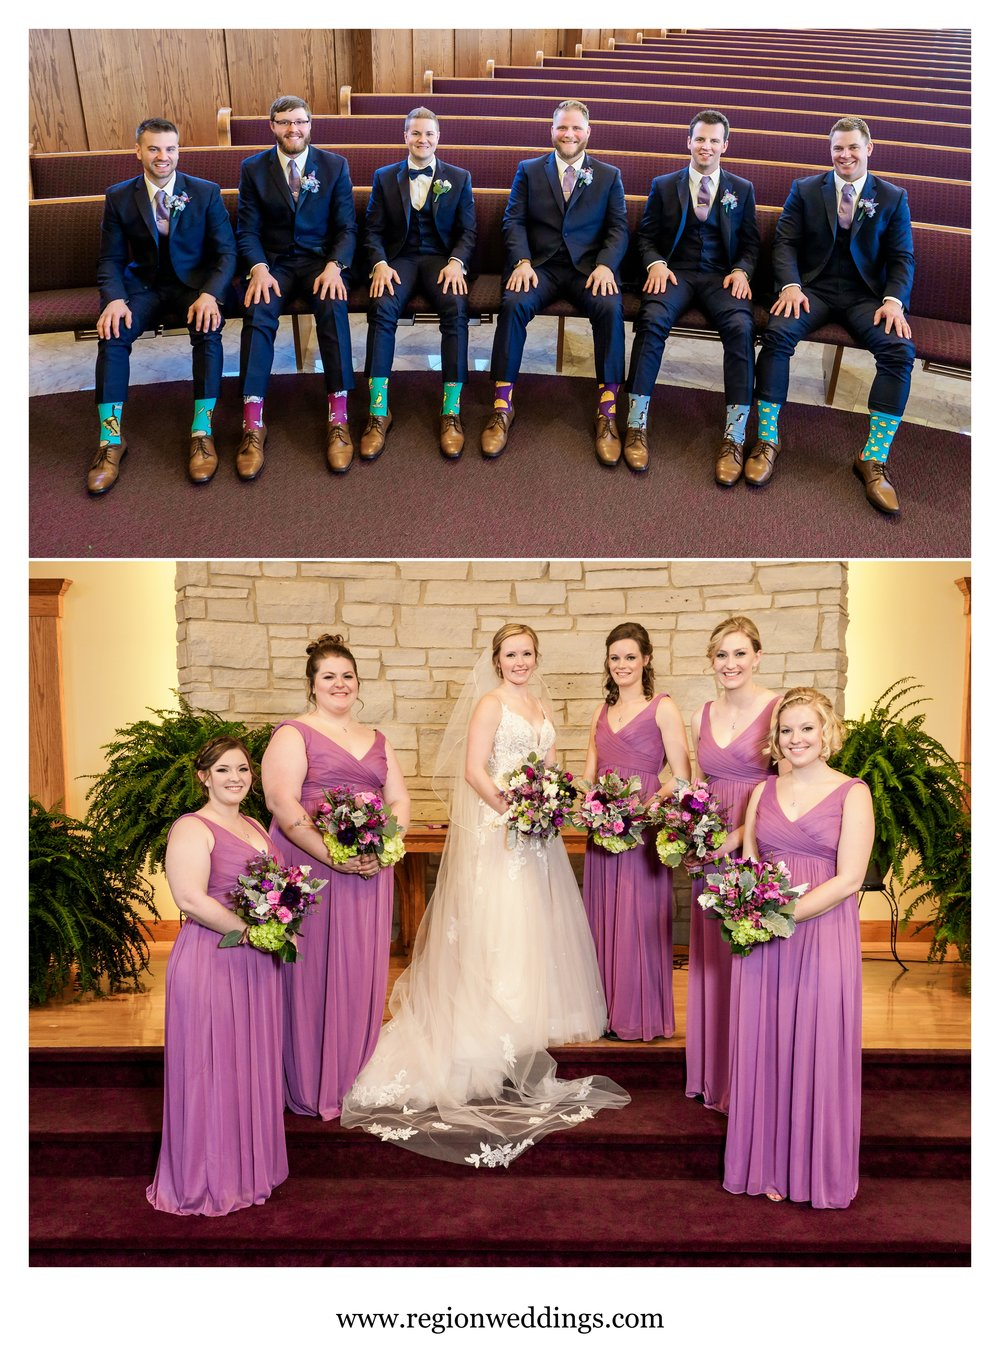 Groomsmen show off their socks while the bridesmaids rock their pretty flowers.